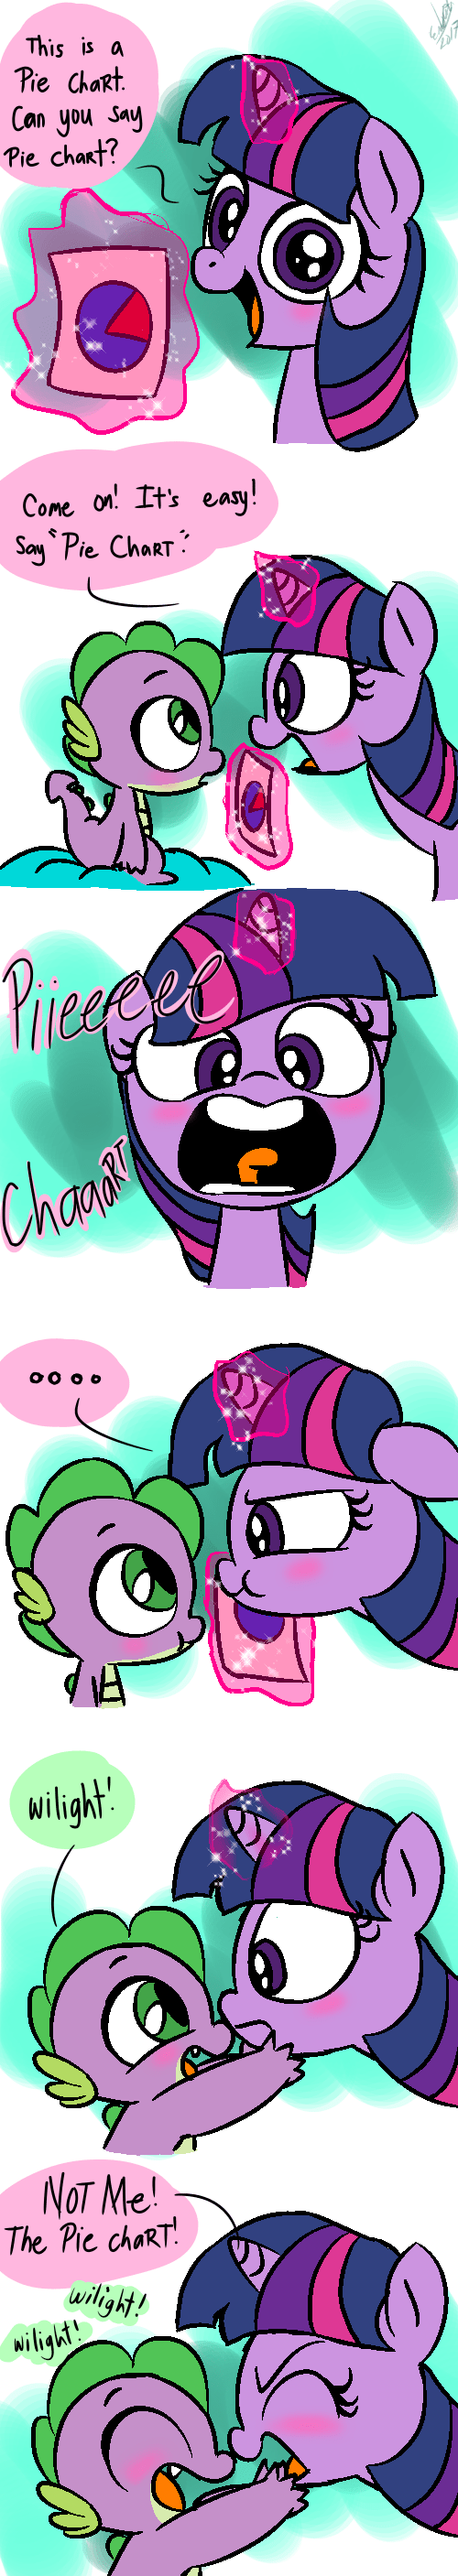 spike emositecc twilight sparkle comic - 9097713920